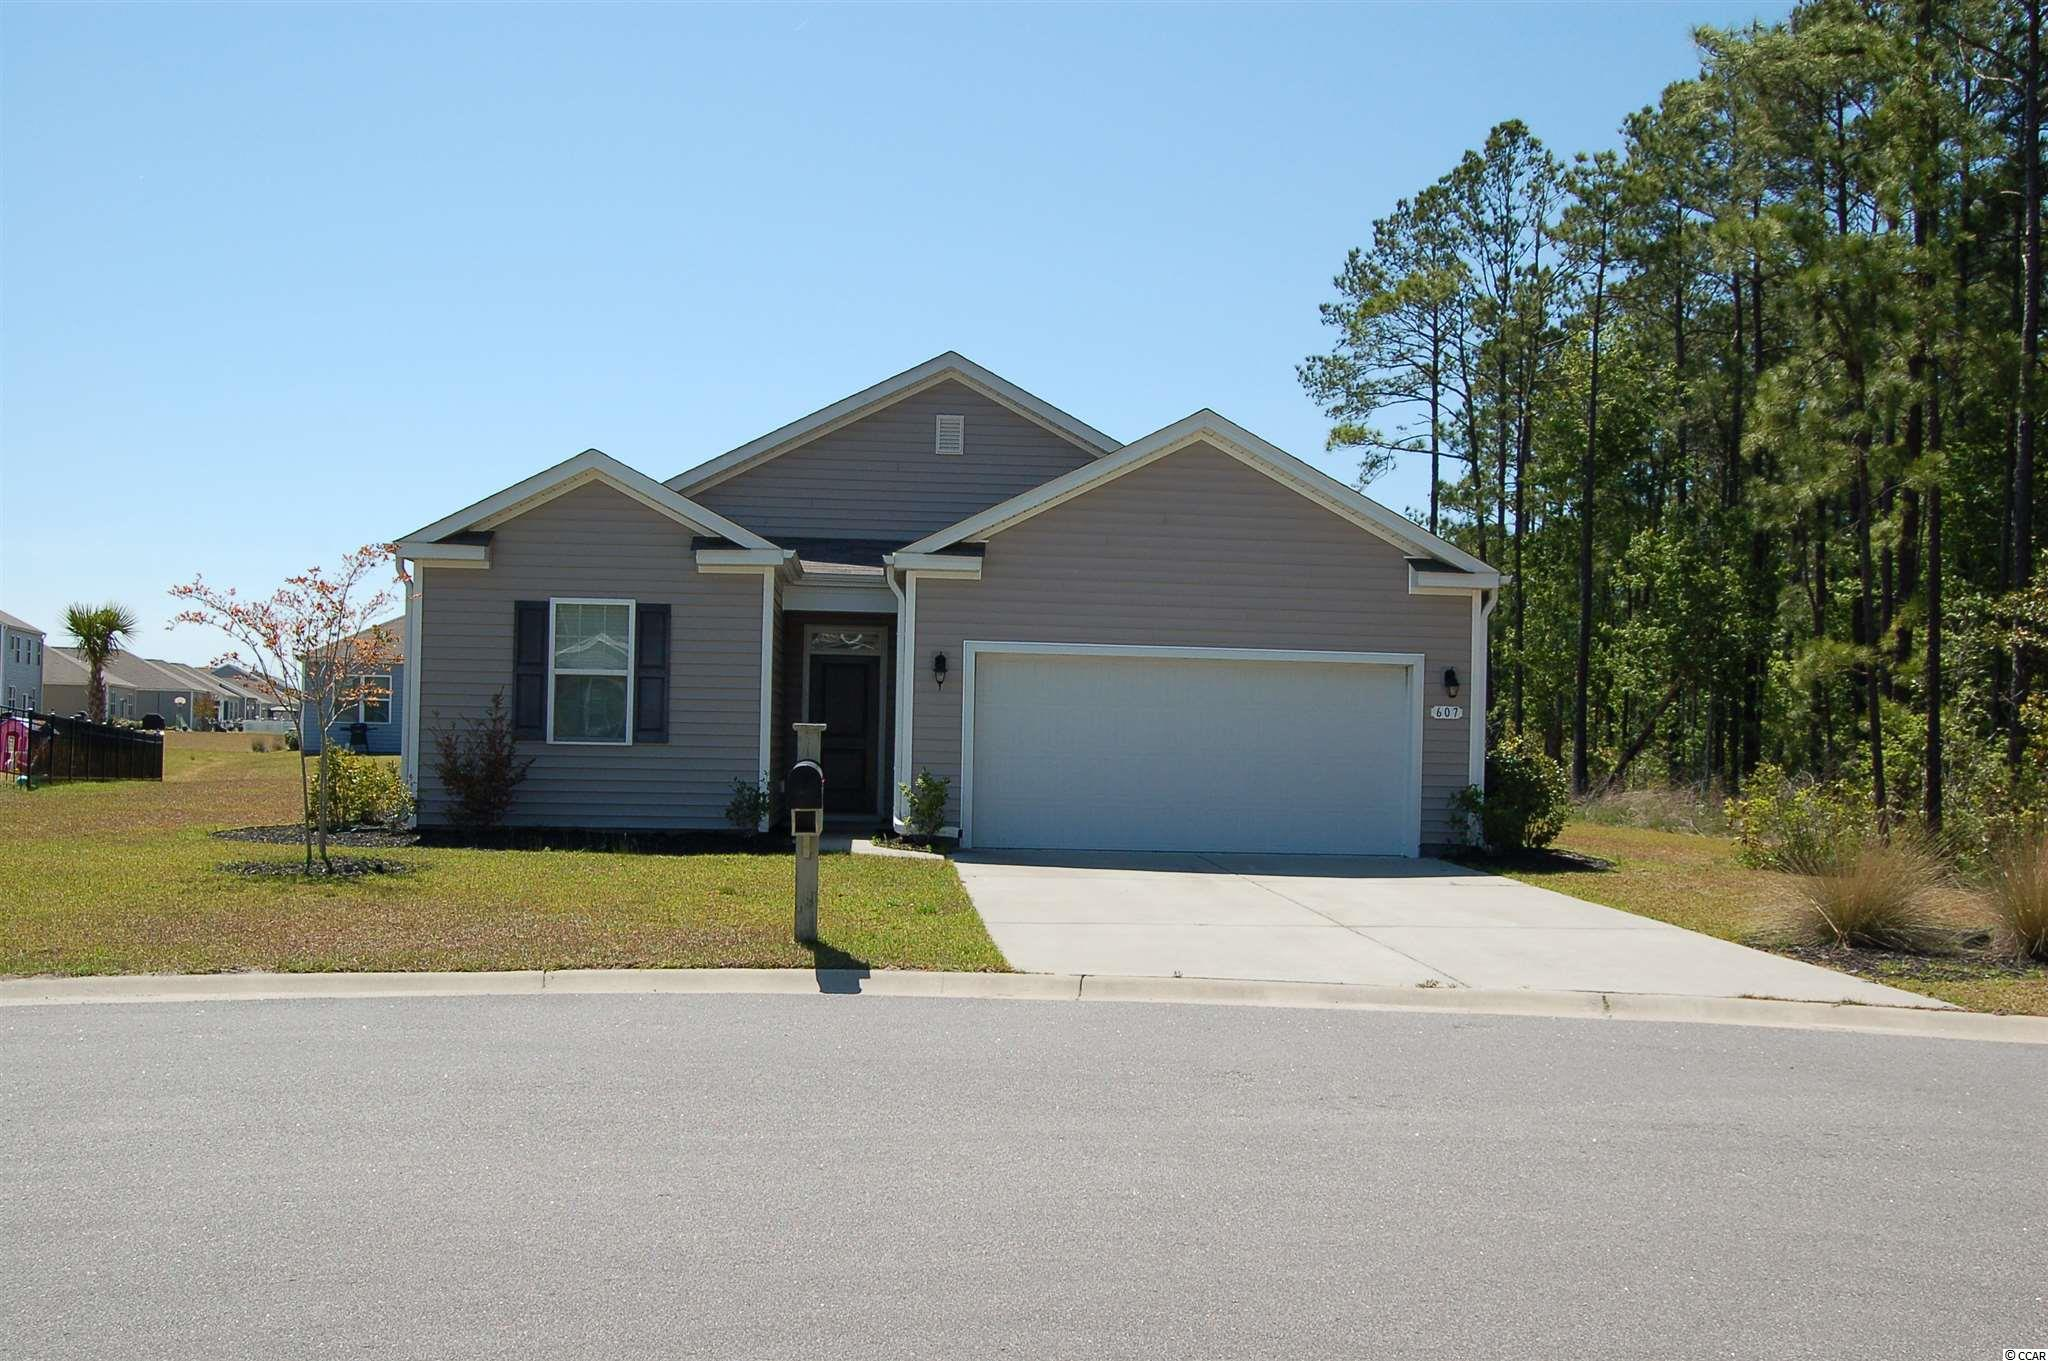 Would you like to own a 3 bdrm 2bath home in the sought after neighborhood of The Farm in Carolina Forest? This home is built on one of the largest lots in a Cul-da-sac with 0.4 Acres and features a split bedroom plan, 2 car garage, washer, dryer, fridge, stove and dishwasher included, granite countertops,  a screened in porch. There are two community pools and it is within walking distance to Ocean Bay Elementary and Middle Schools. Very close to grocery stores, restaurants, shopping and the BEACH.